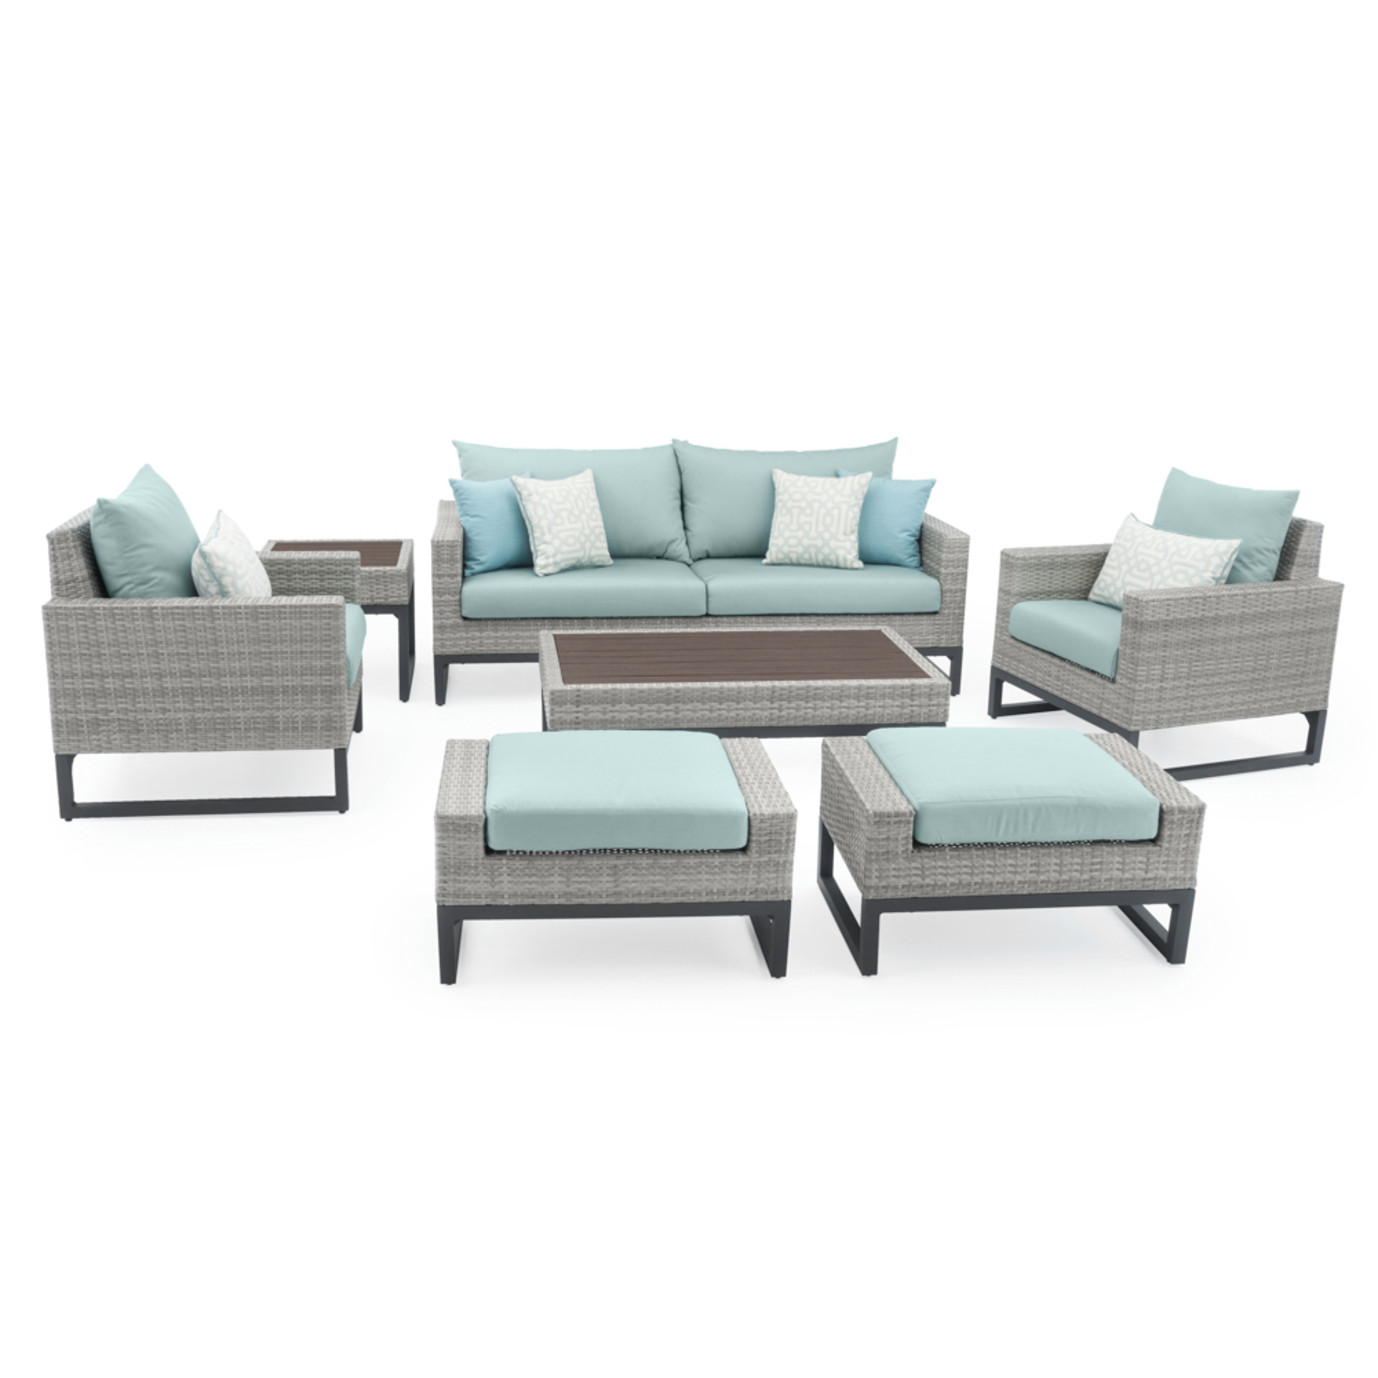 Milo™ Gray 7pc Deep Seating Set - Spa Blue